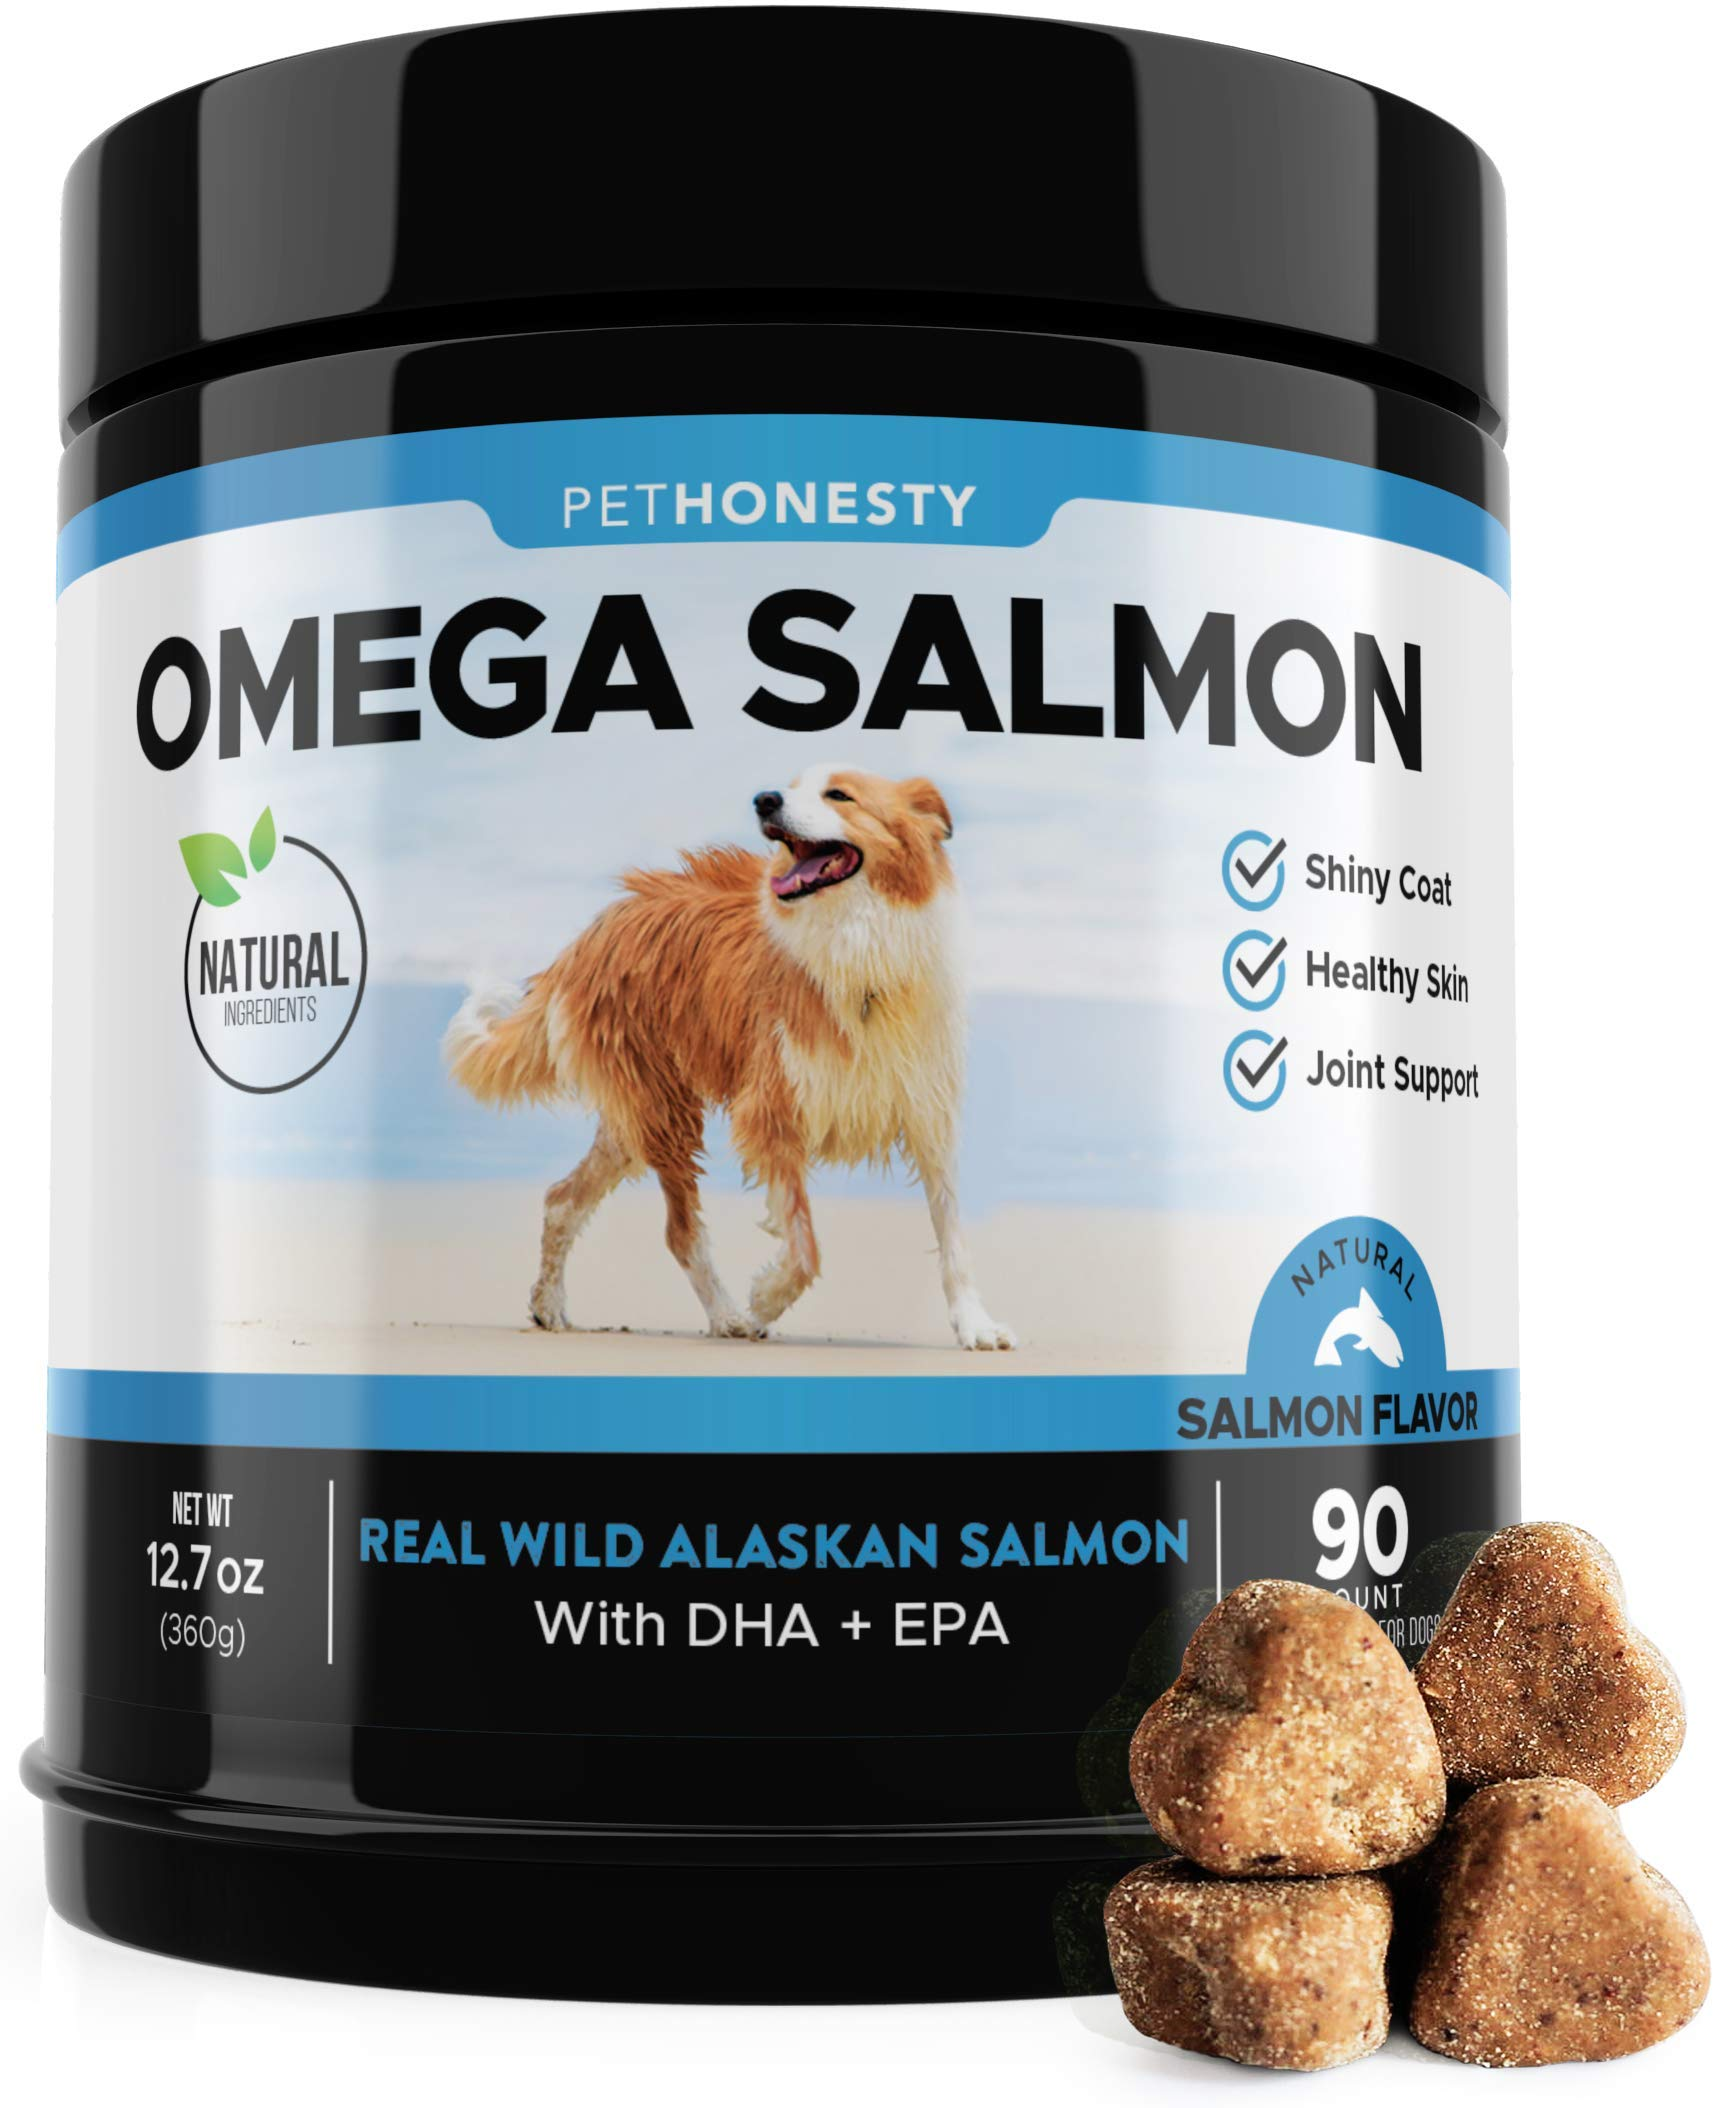 Salmon Oil for Dogs – Omega 3 Fish Oil For Dogs All-Natural Wild Alaskan Salmon Chews Omega 3 for Dogs for Healthy Skin & Coat, Cure Itchy Skin, Dog Allergies, Reduce Shedding – 90 Ct. Fish Oil